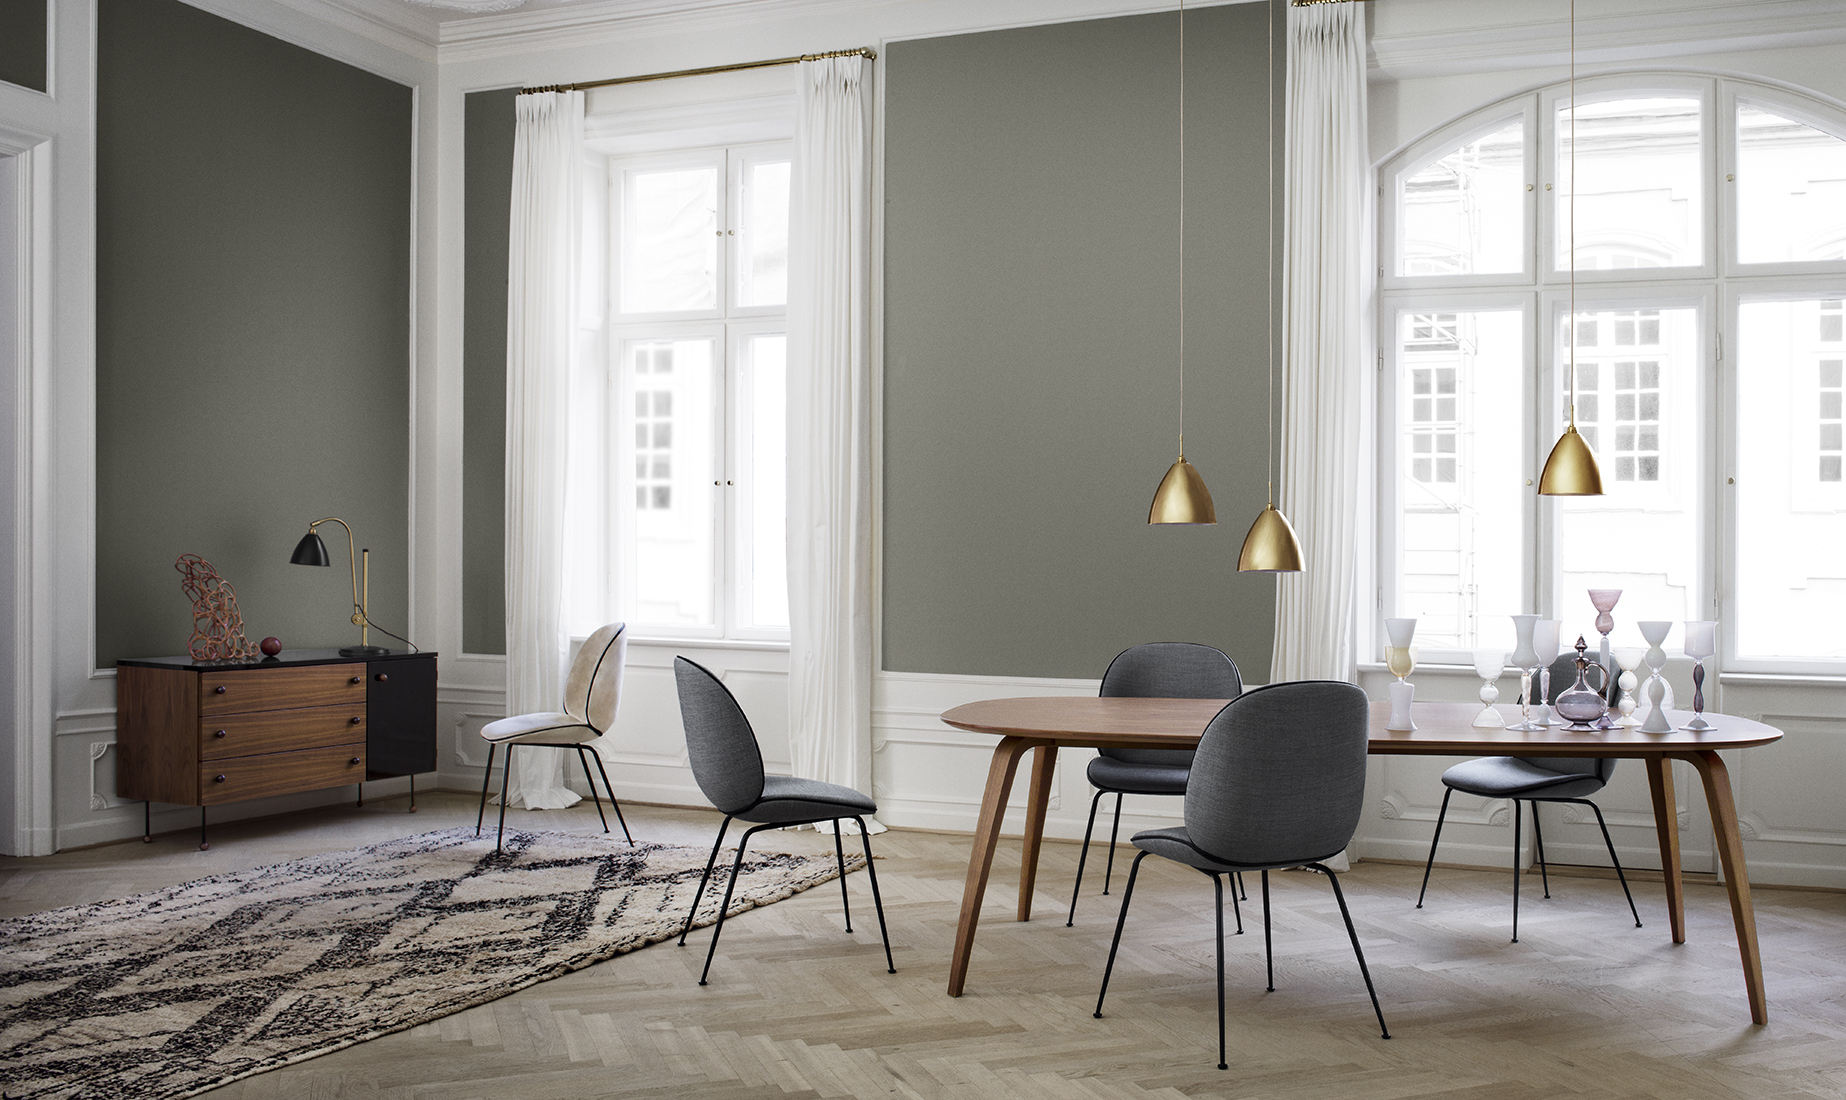 Roomify Couchtisch Domi Design Interieur Udem